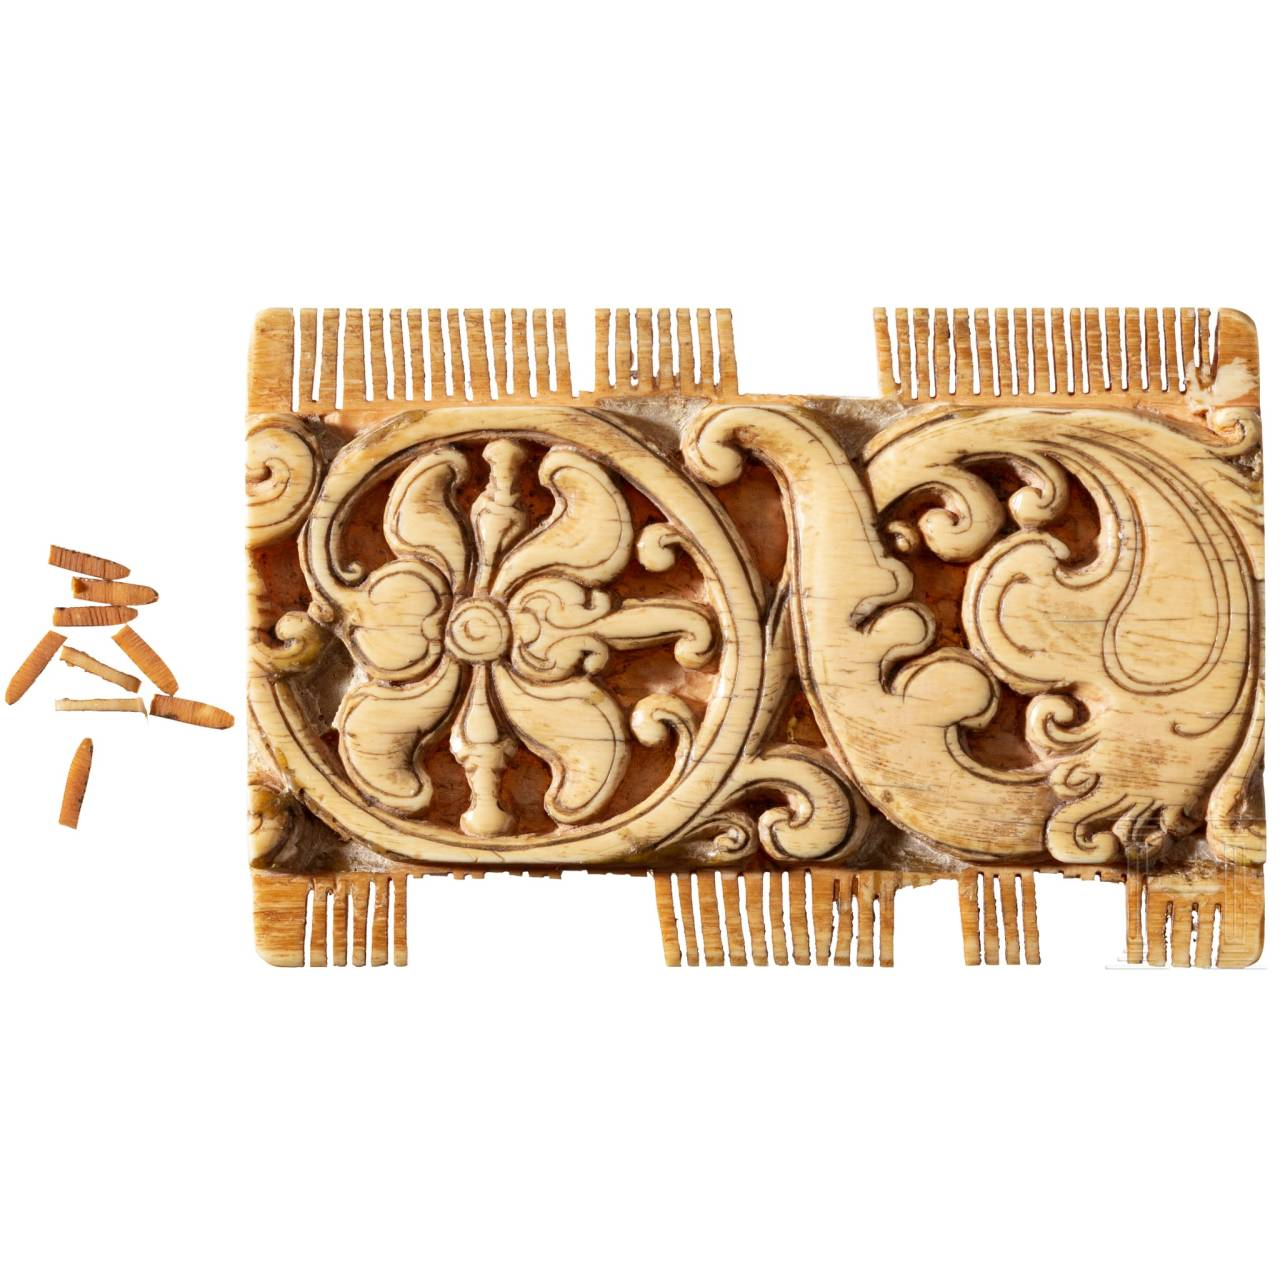 A German ivory comb, 15th century